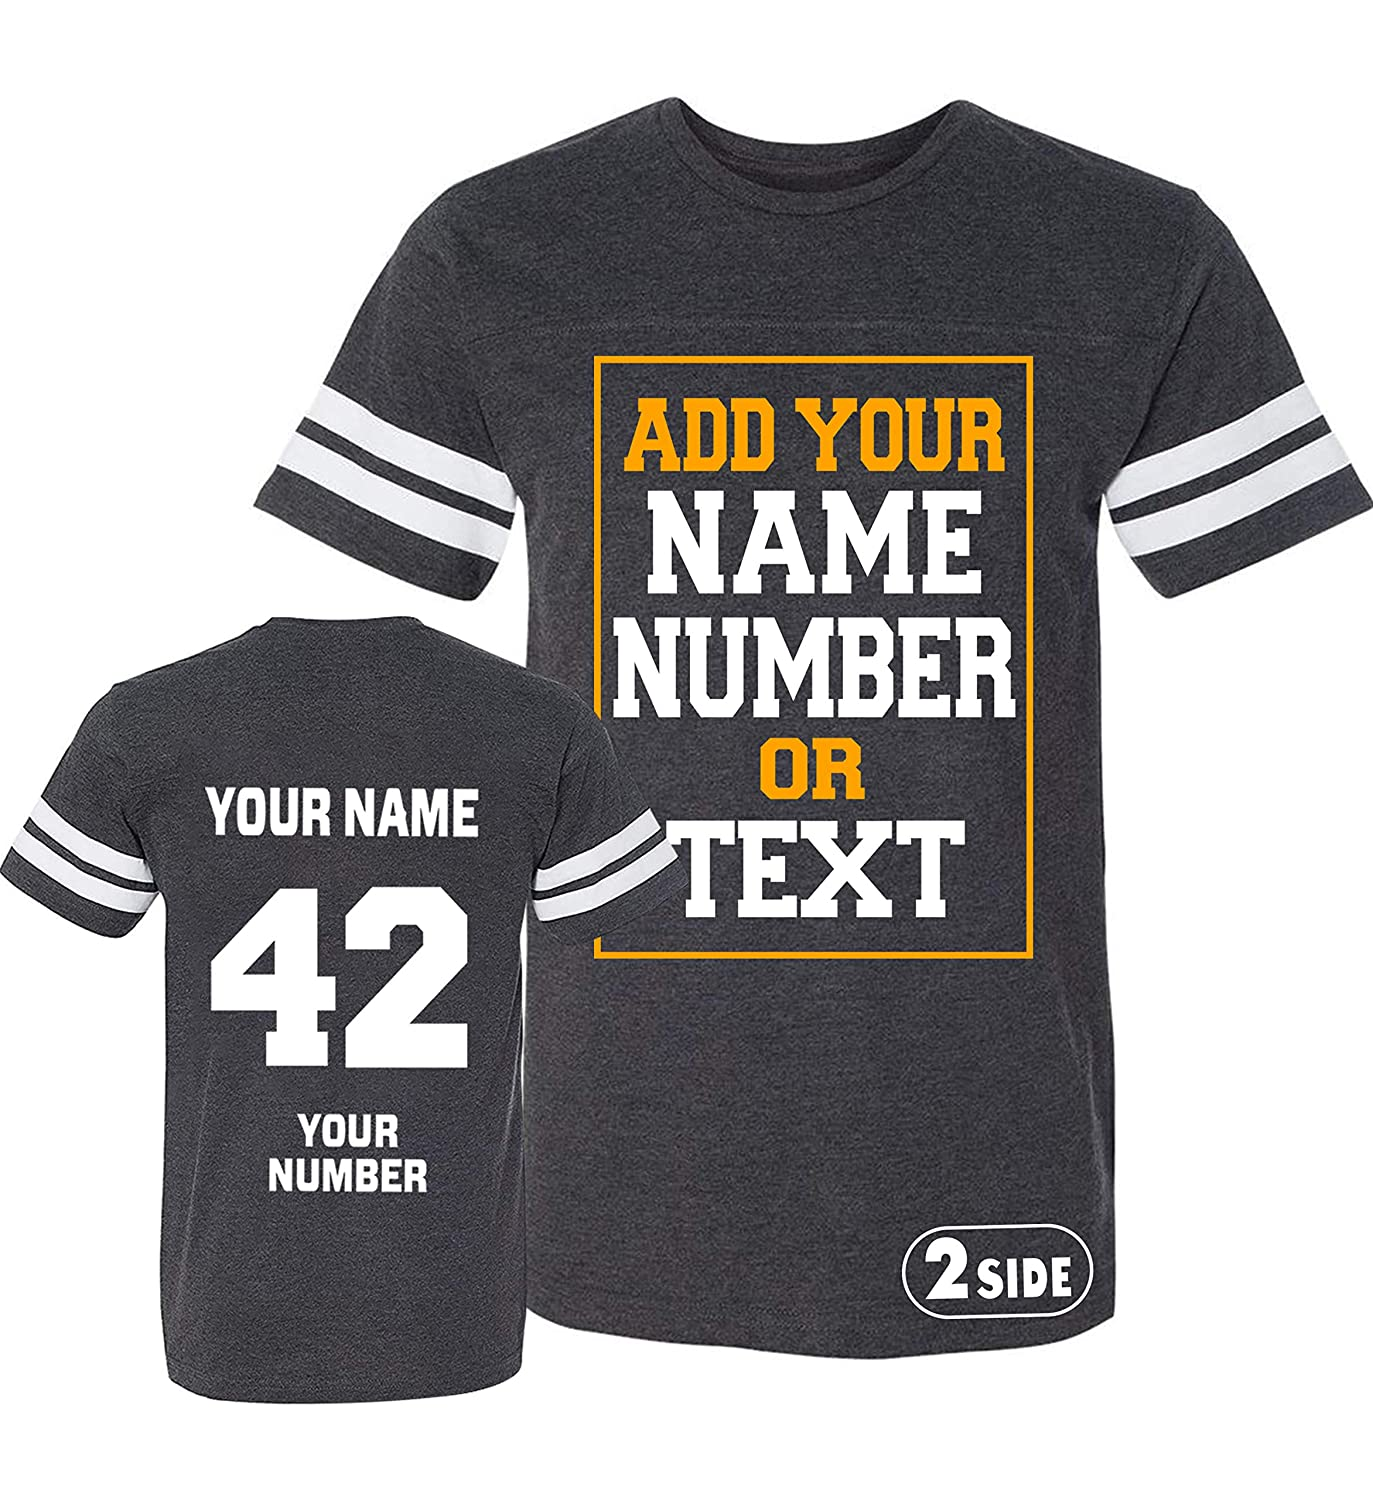 796a1d864 Amazon.com: TEEAMORE Men Custom Jersey, Add Your Text, Design Your Own,  Front and Back Side: Clothing